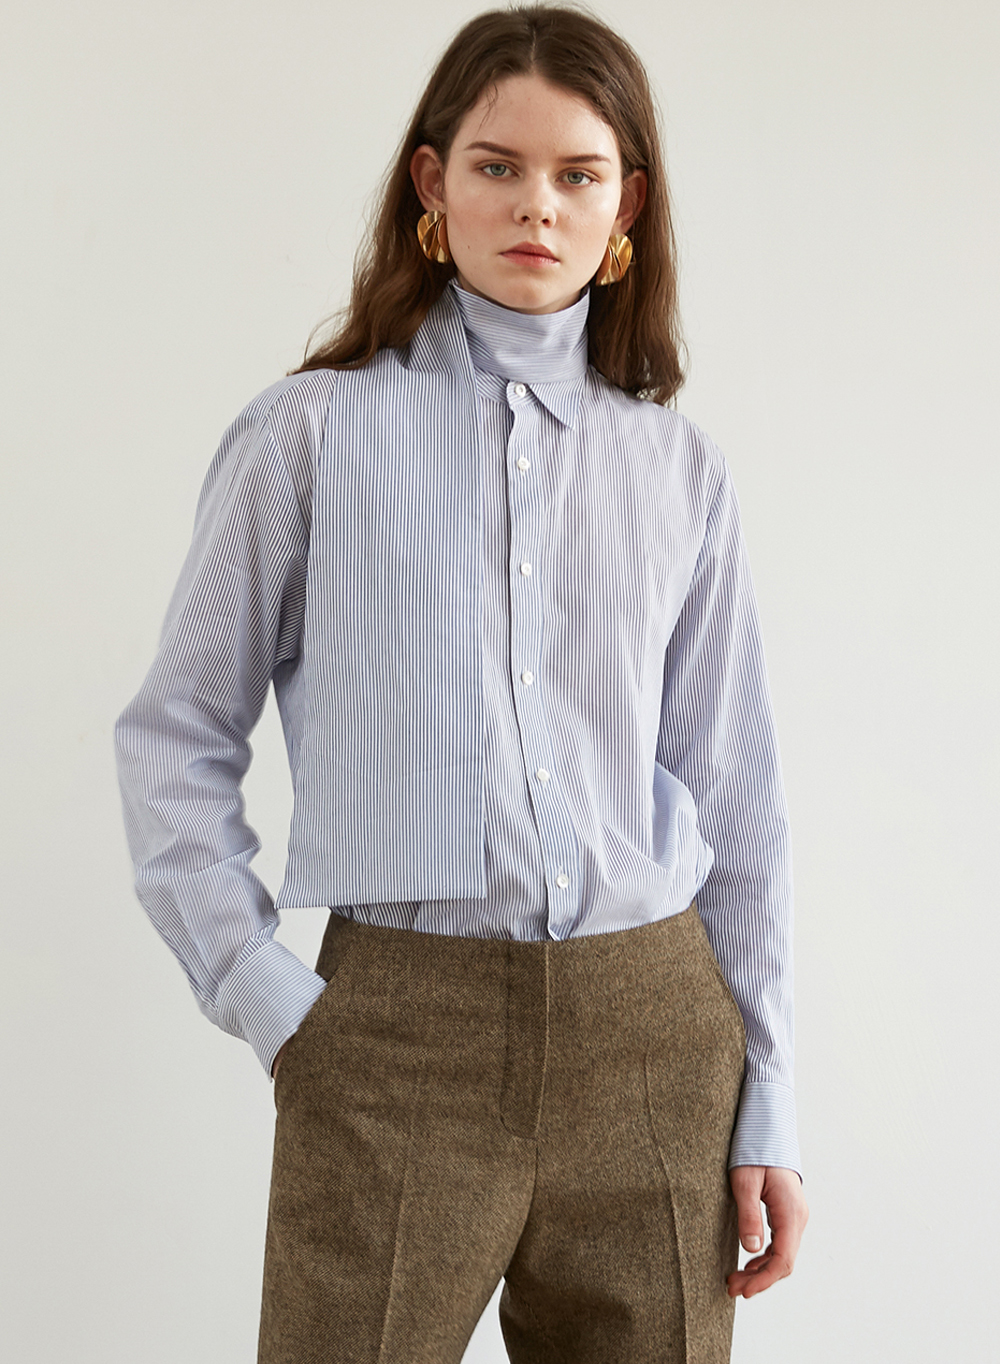 FW18 TIED SHIRT BLUE